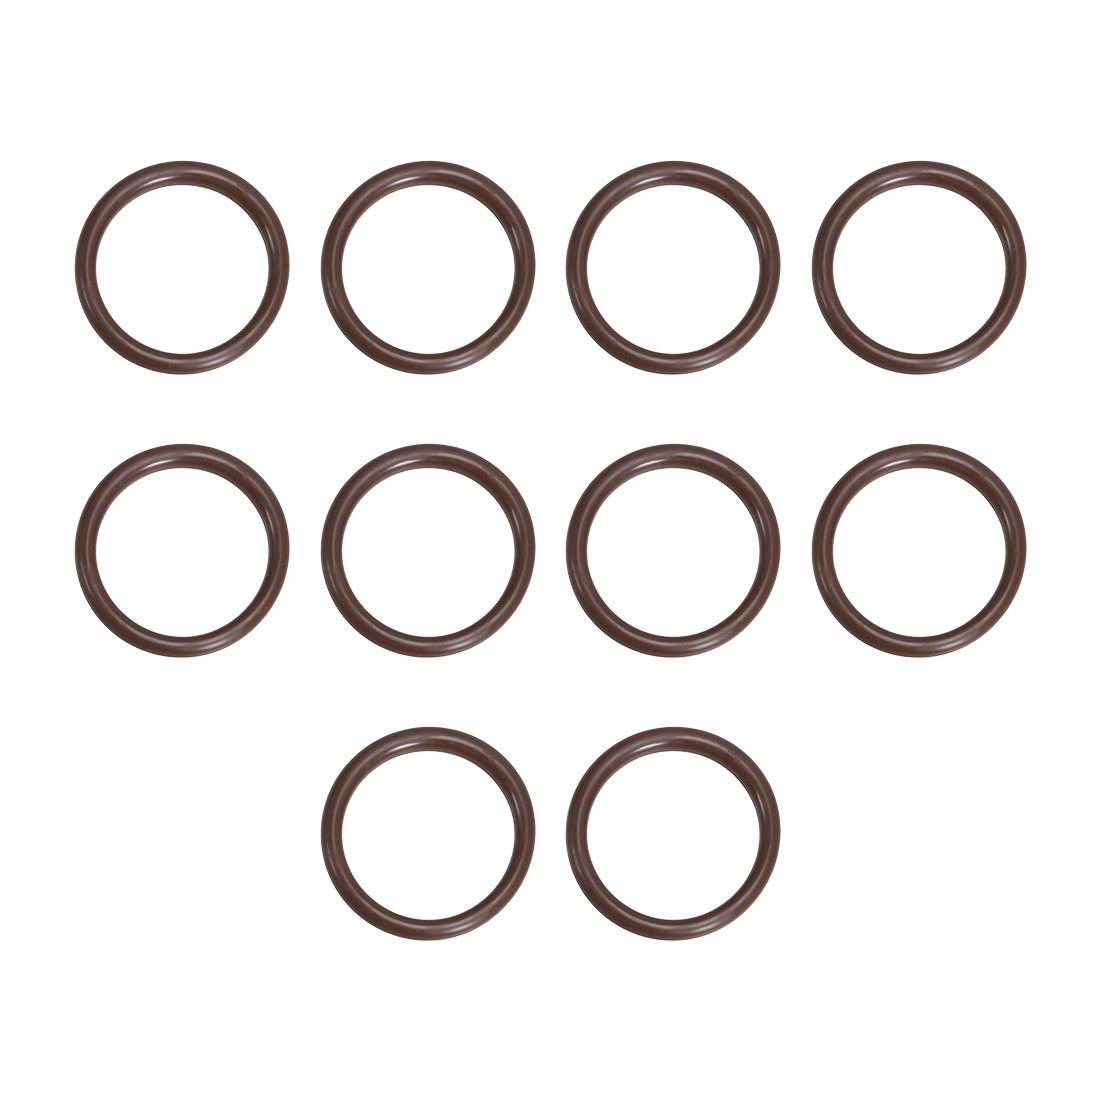 10 Pcs Fluororubber Gasket Sanitary Clamp Washer 52mm x 41mm O-Ring